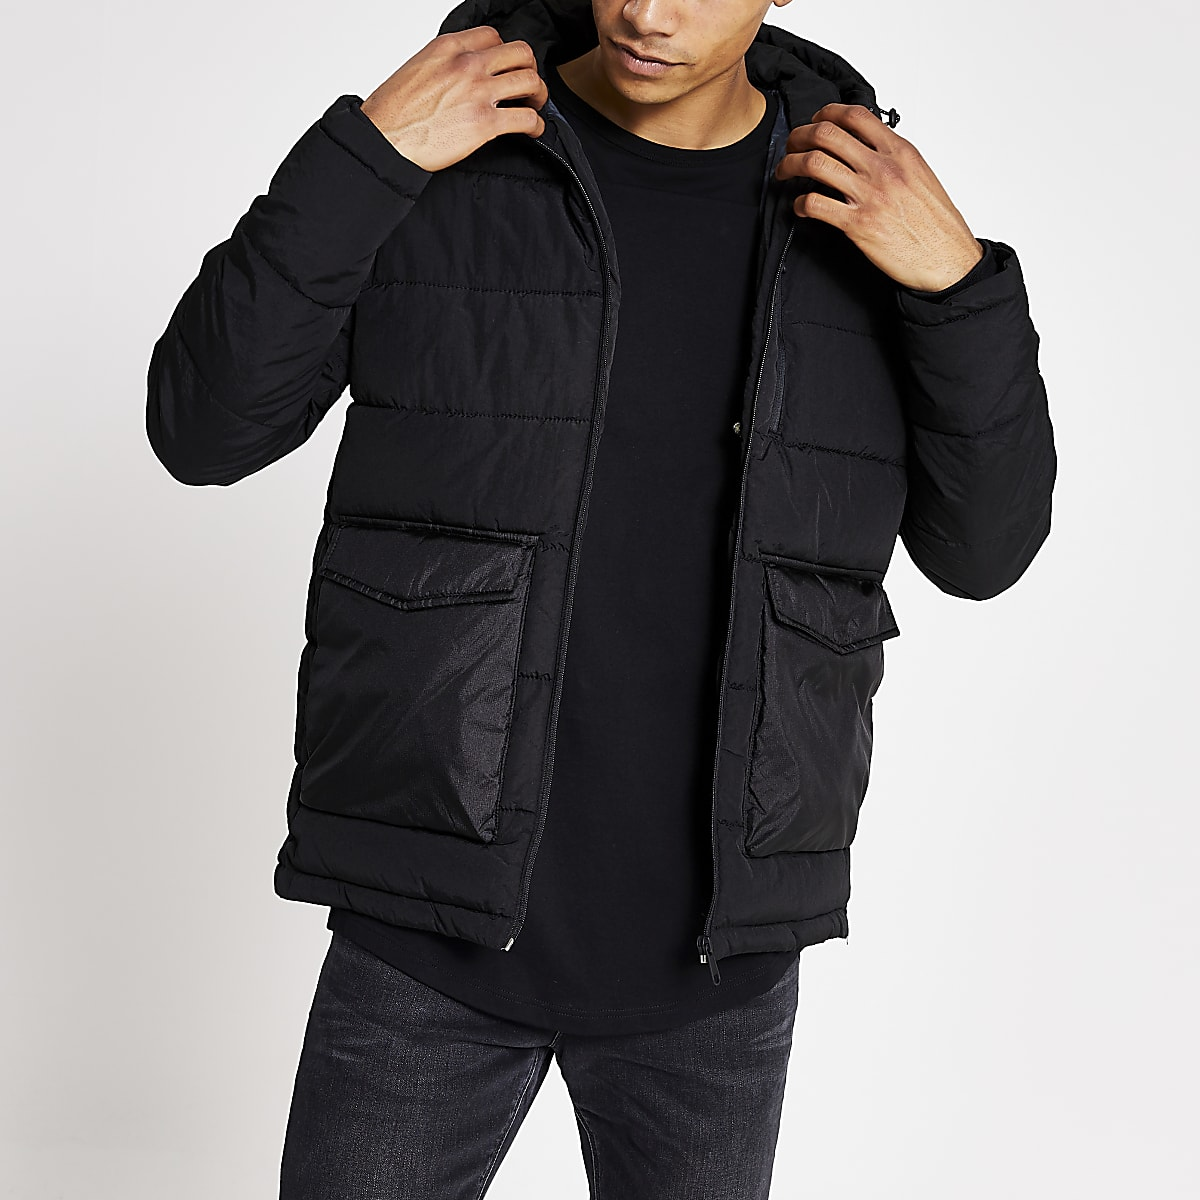 Jack and Jones - Zwart gewatteerd jack met capuchon